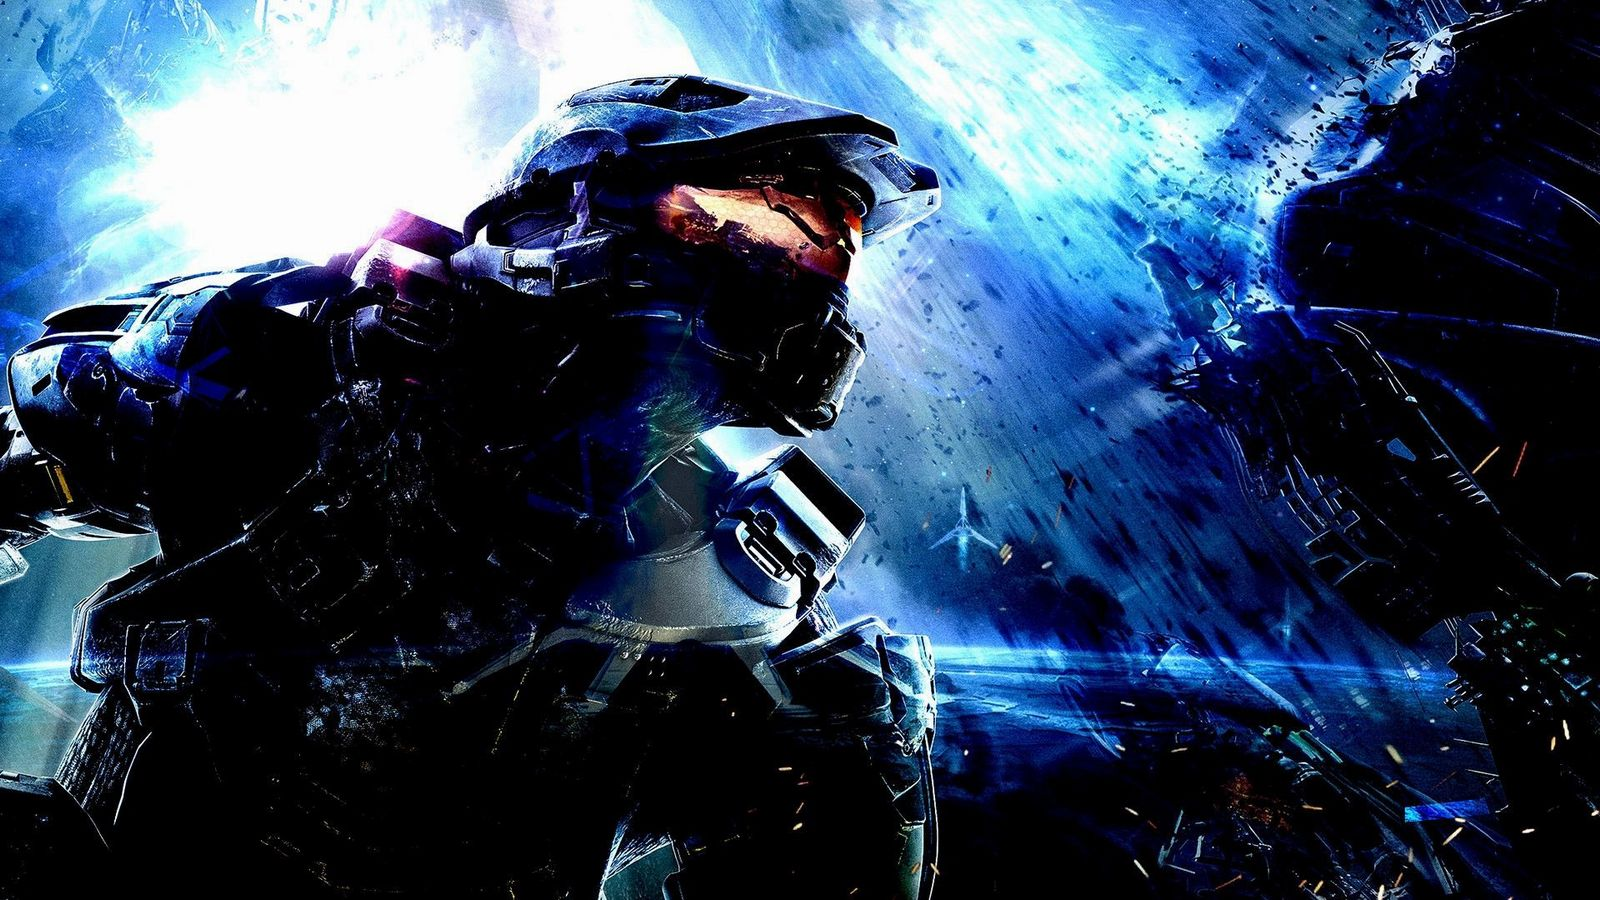 Halo blue background Wallpaper